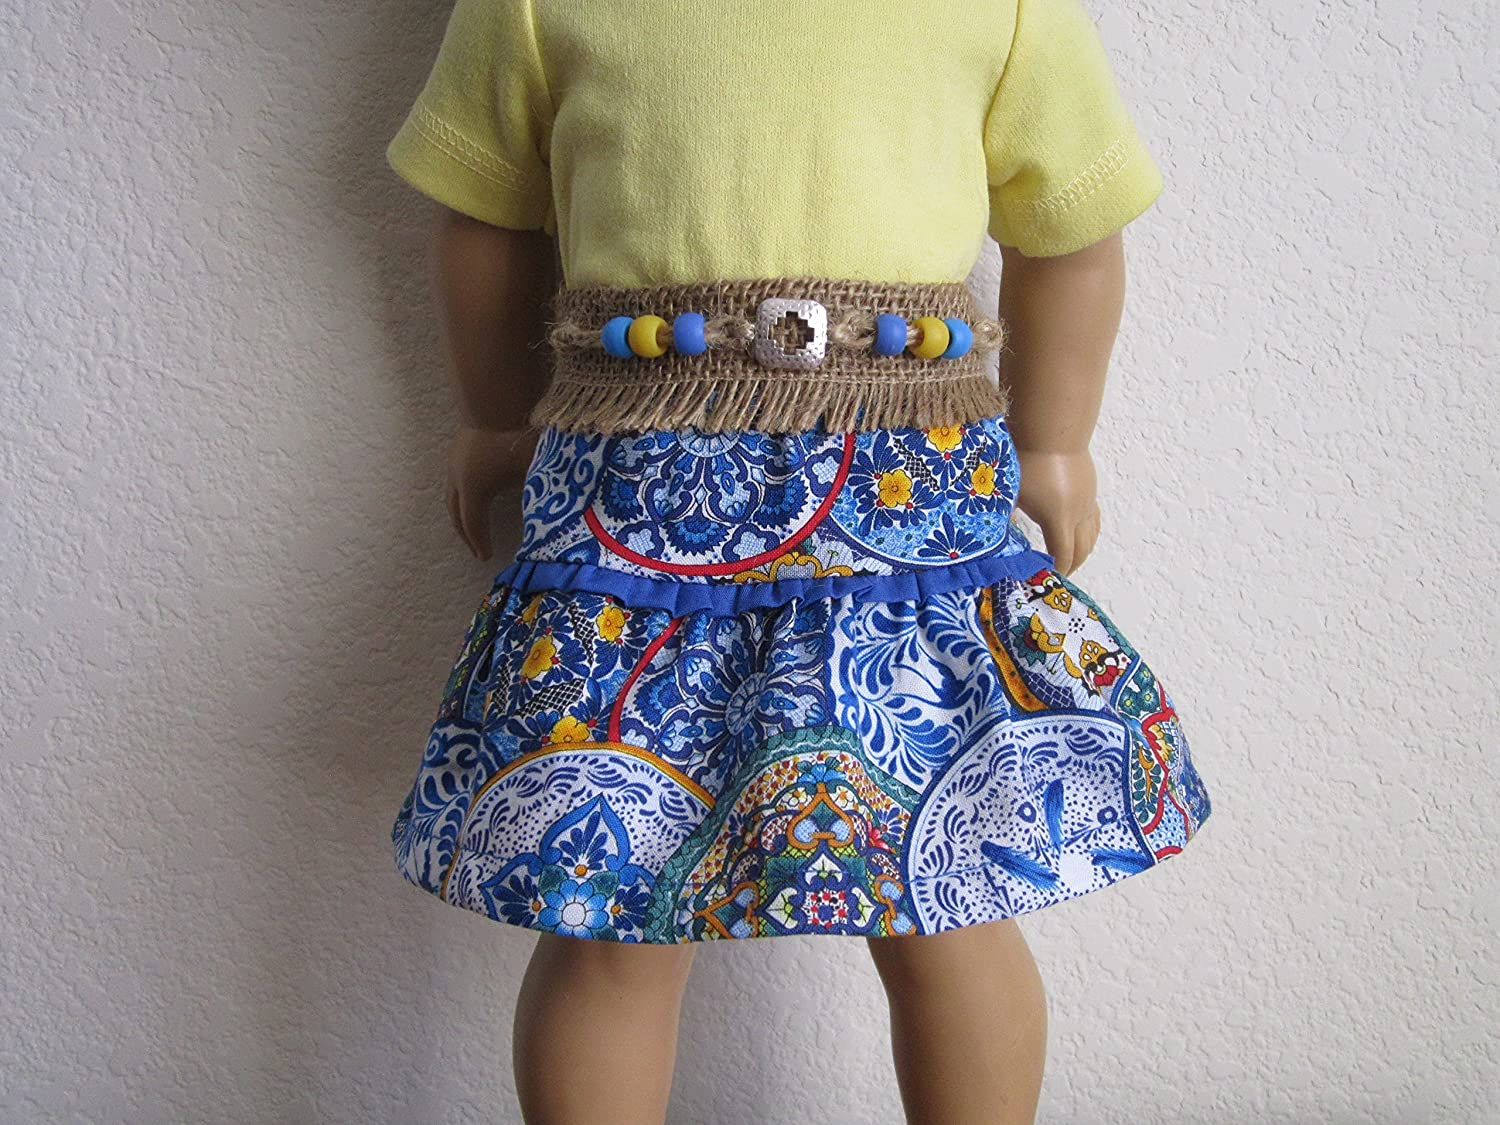 Southwest Talavera Skirt with Concho Belt with Beads fit American Girl Colorful